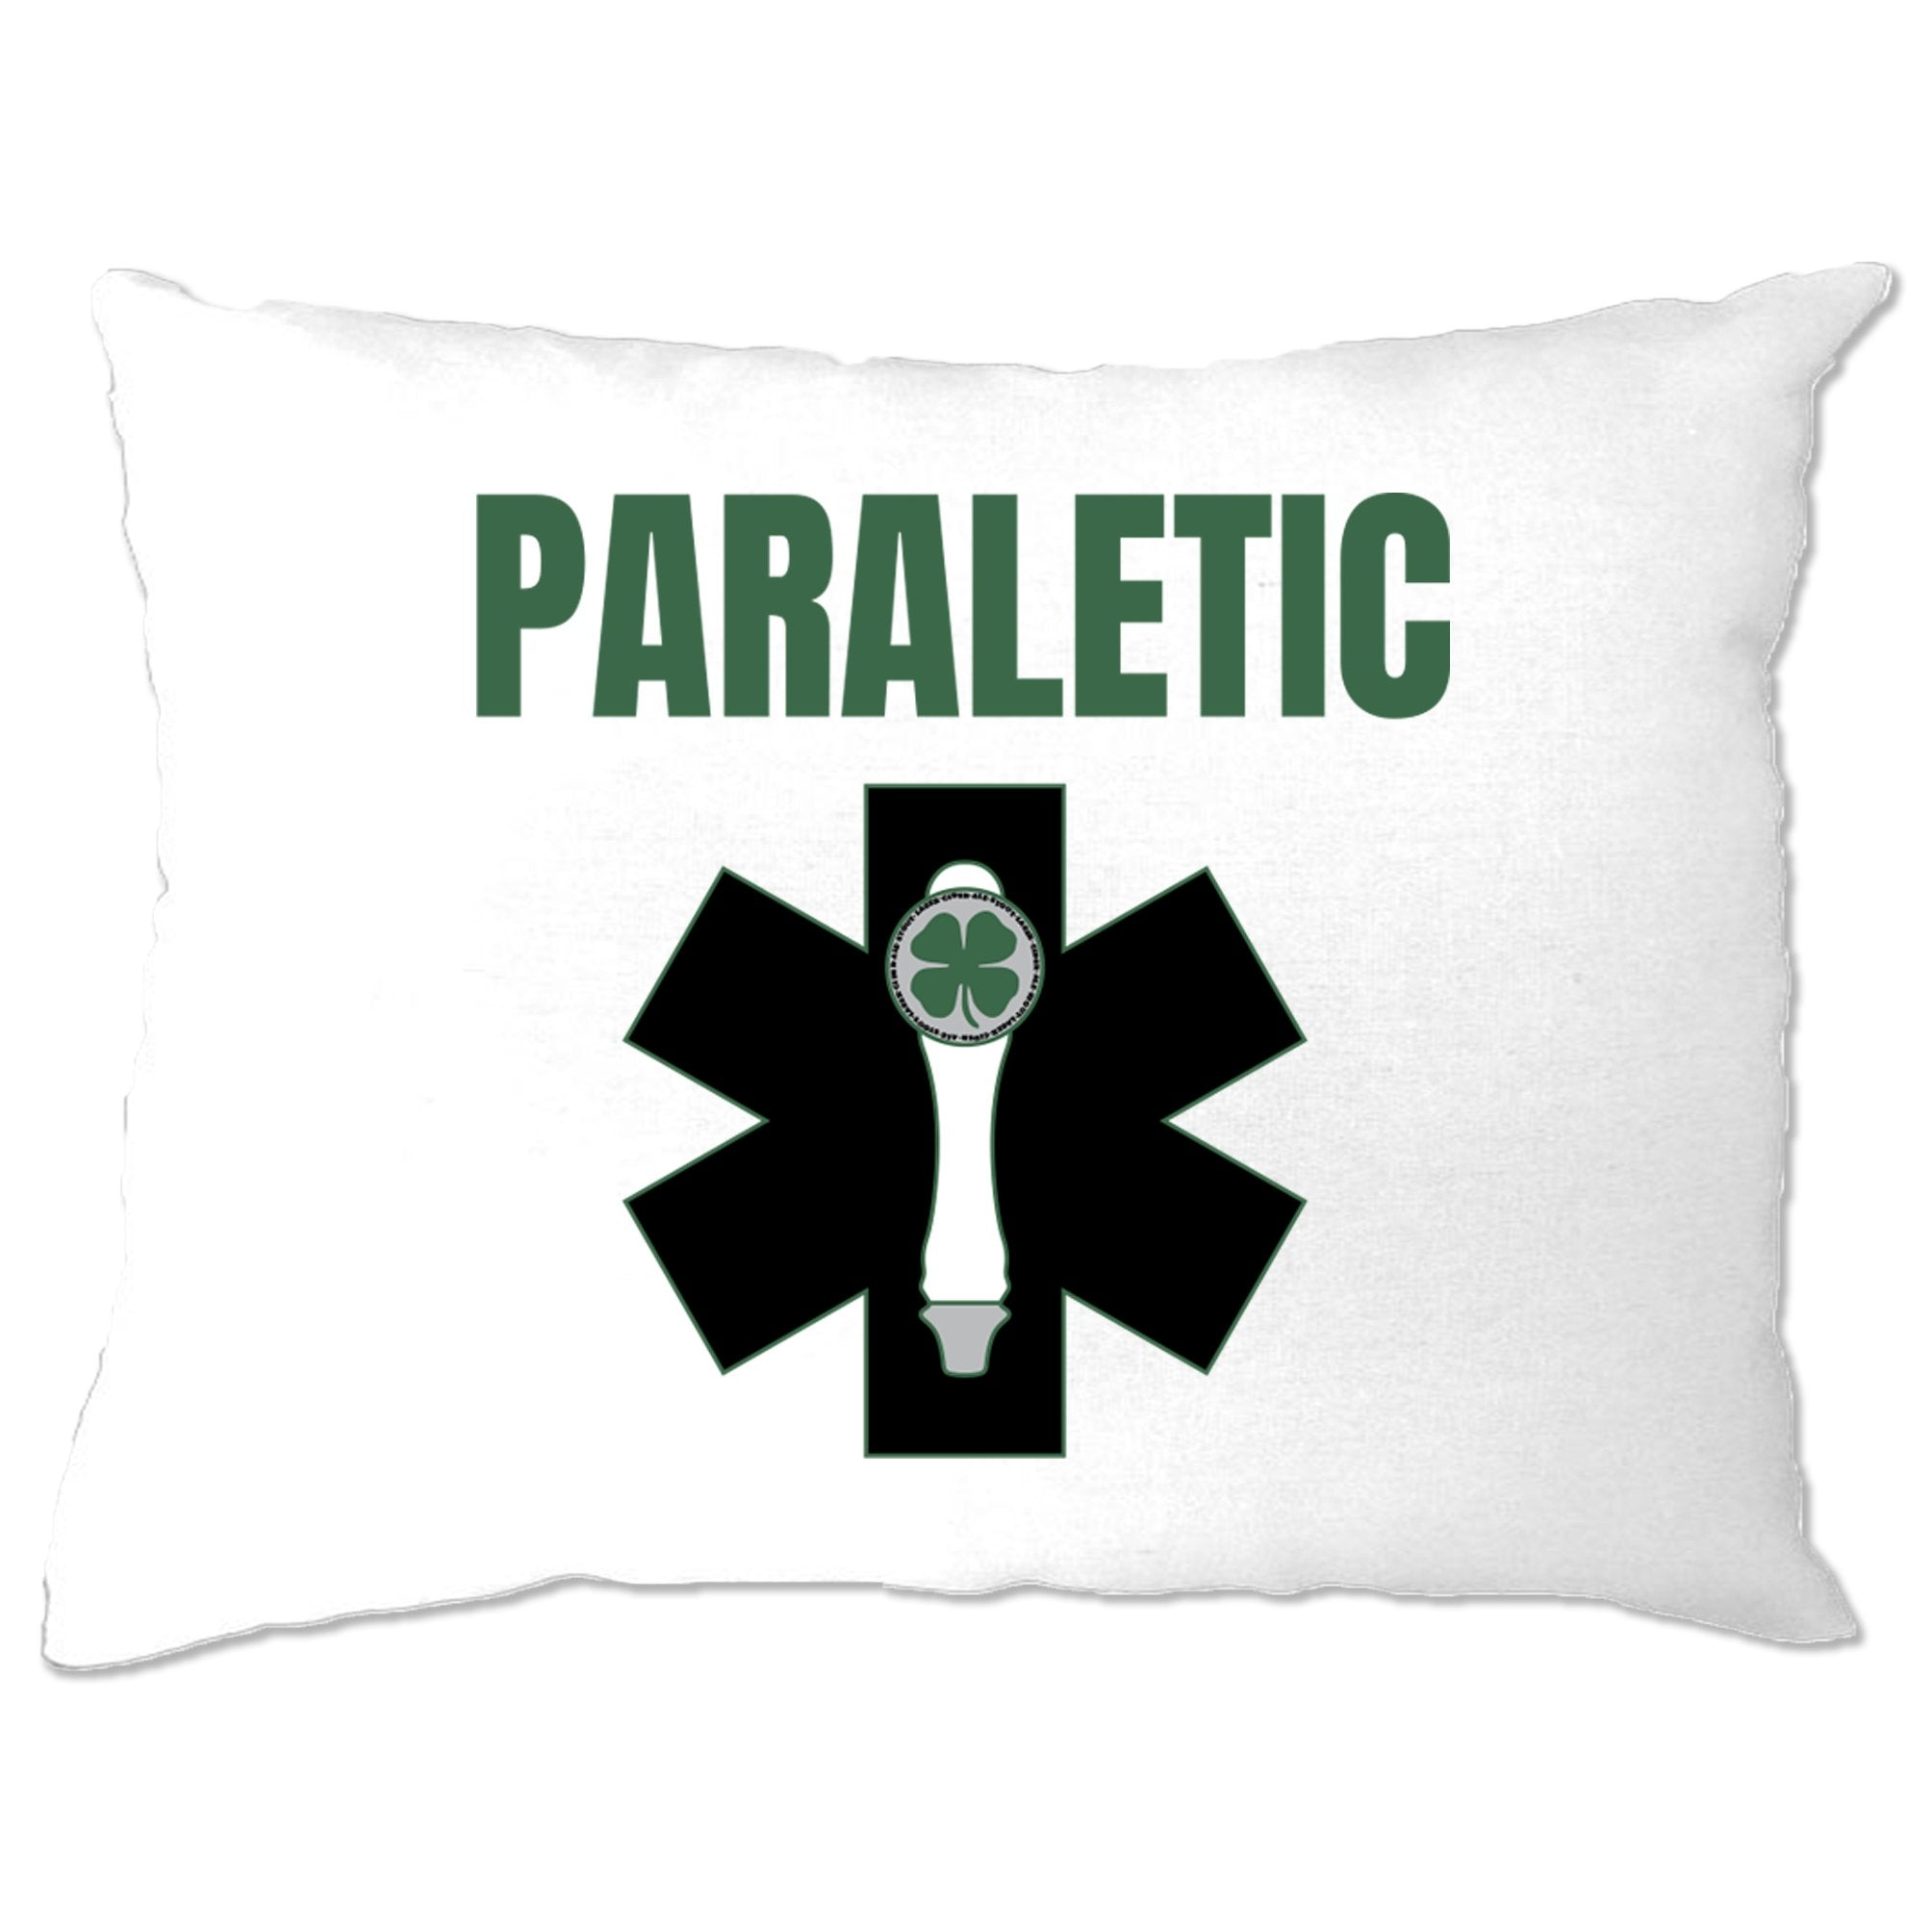 St. Patricks Pillow Case Paraletic joke Pun